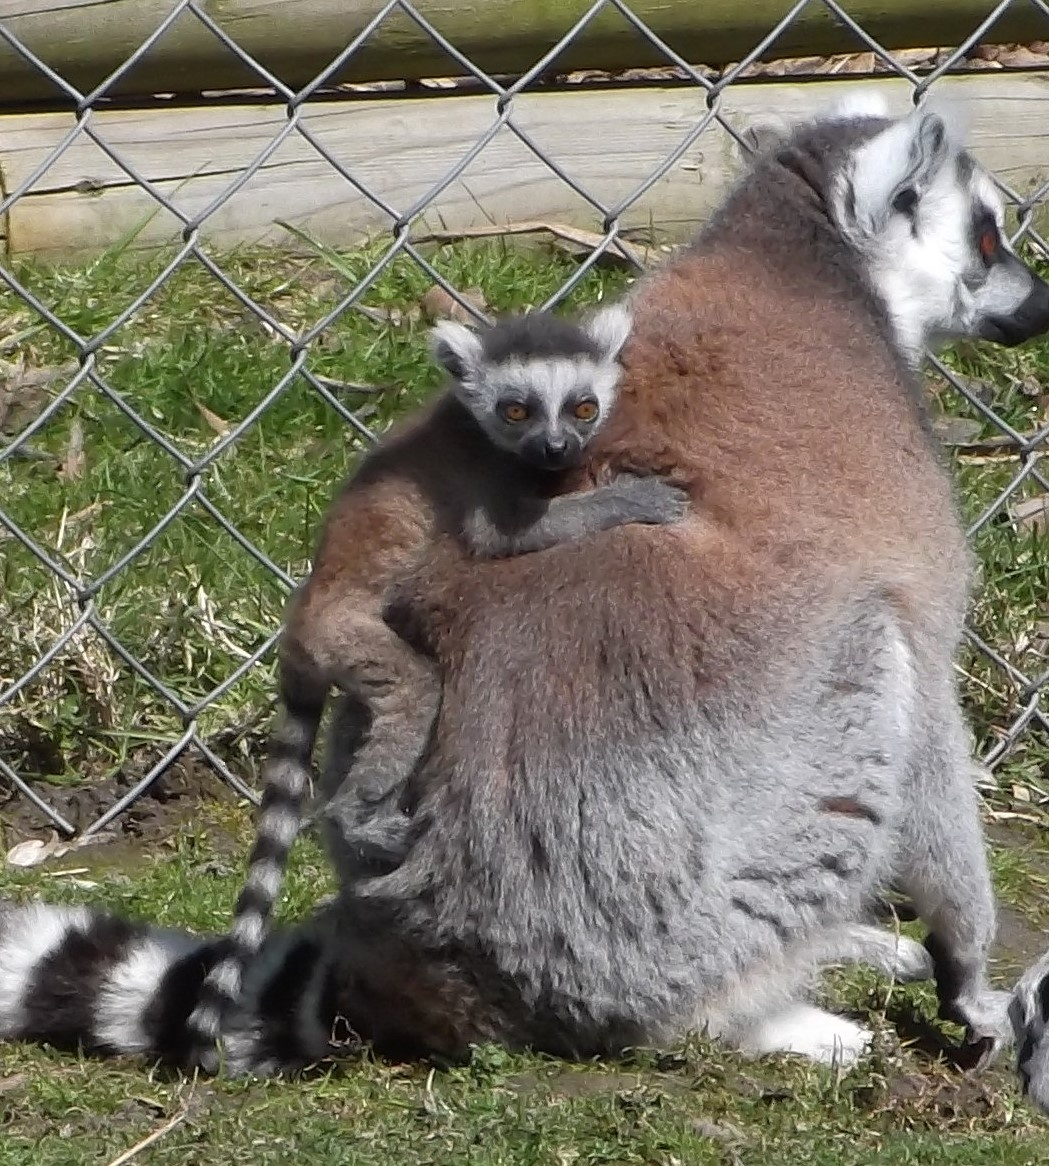 Baby Lemur with Mother by Michelle Bradbury